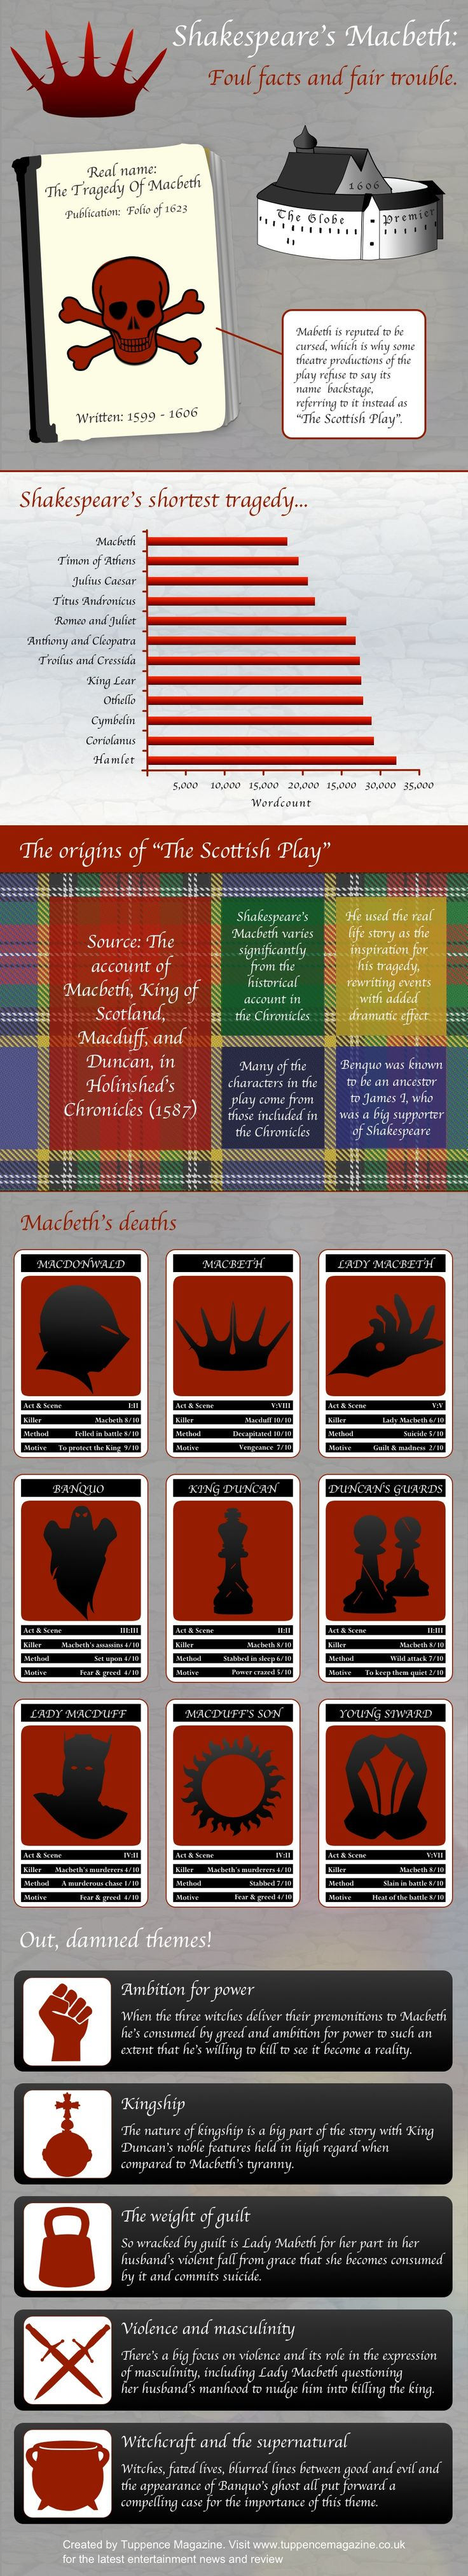 Shakespeare's Macbeth Infographic - The Facts.